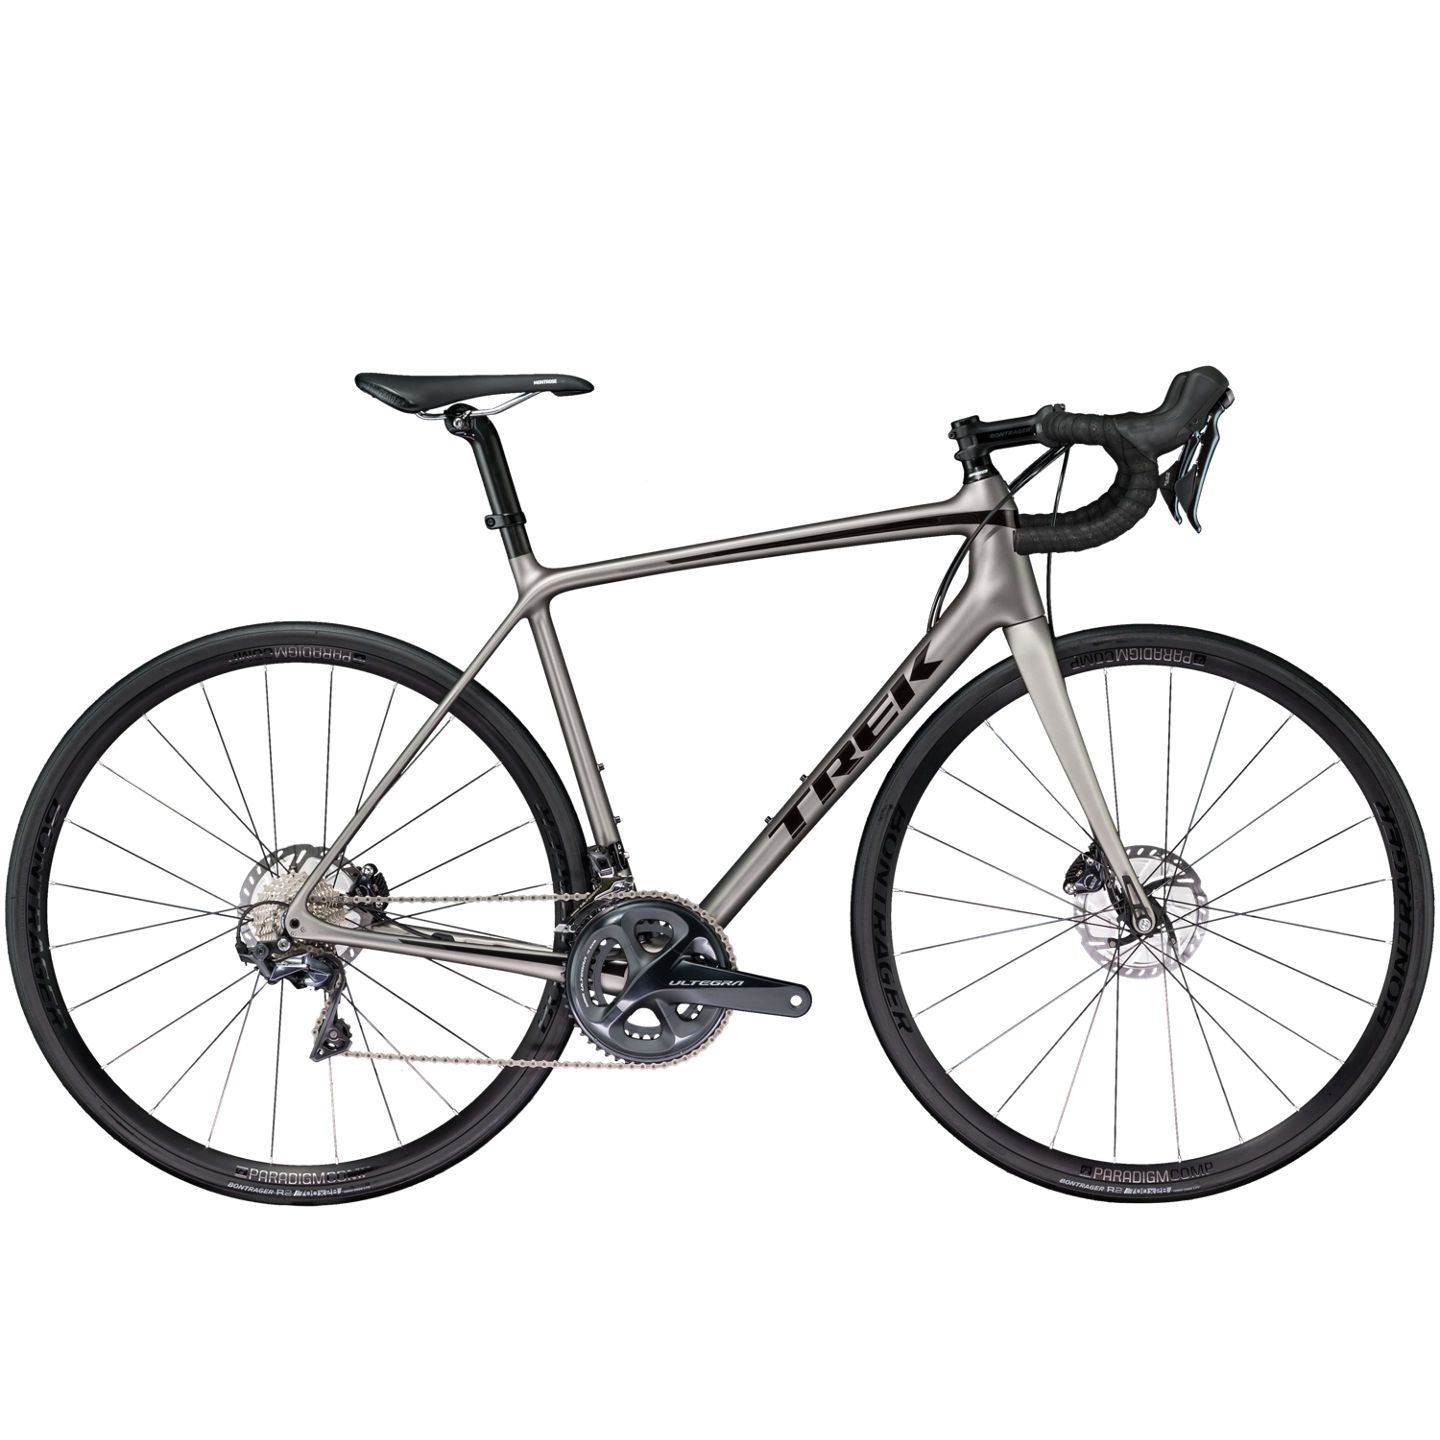 Trek Emonda SL 6 Disc Bike